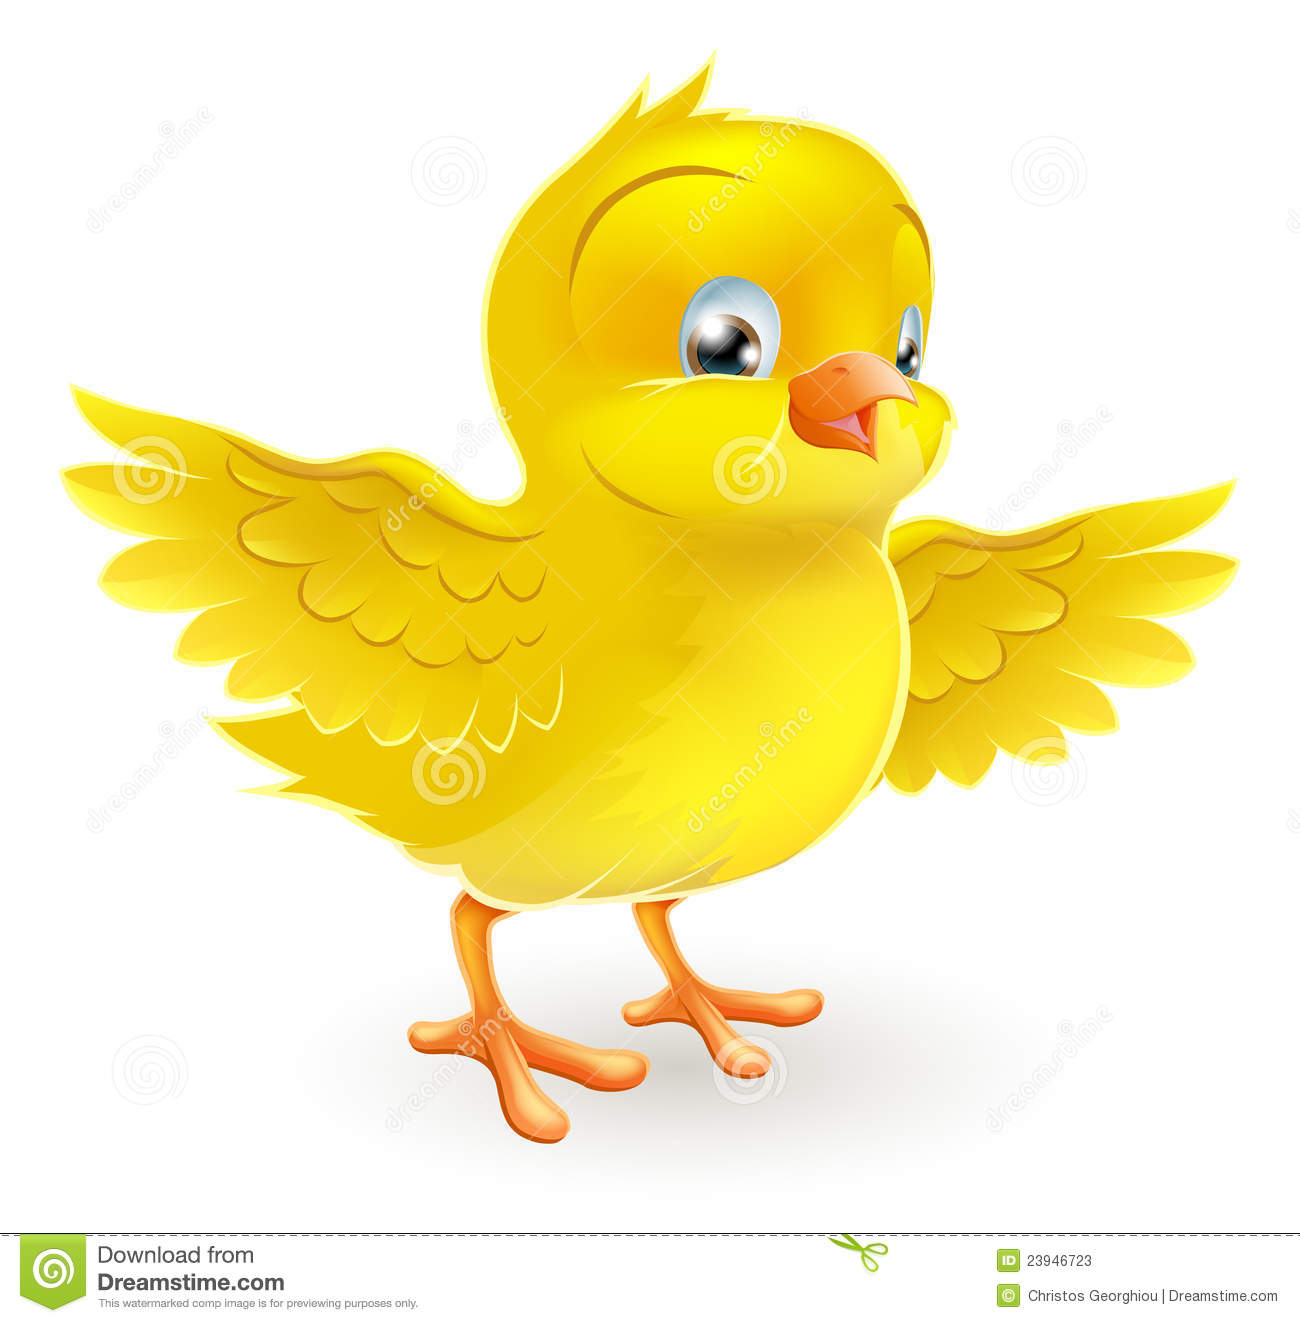 ... cute happy little yellow Easter chick with its wings outstretched